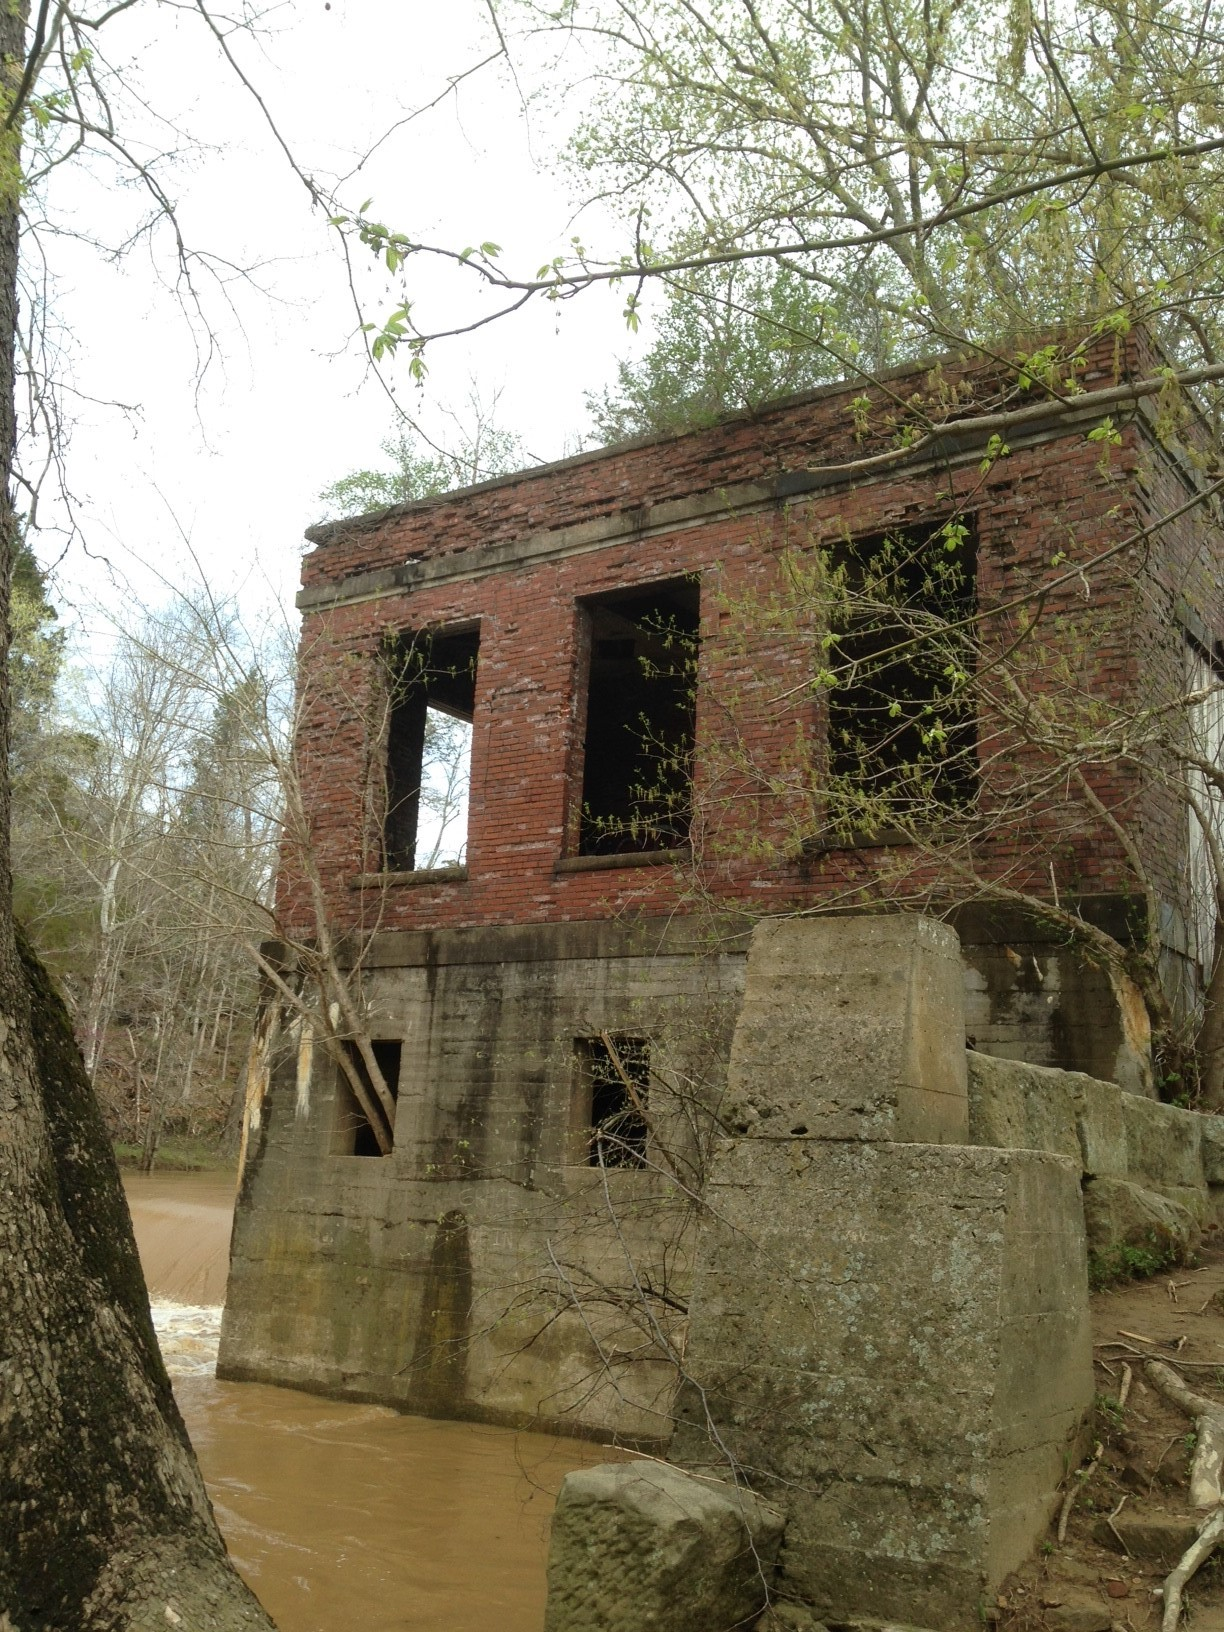 Remains of the 1920 power house at Howell's Mill.